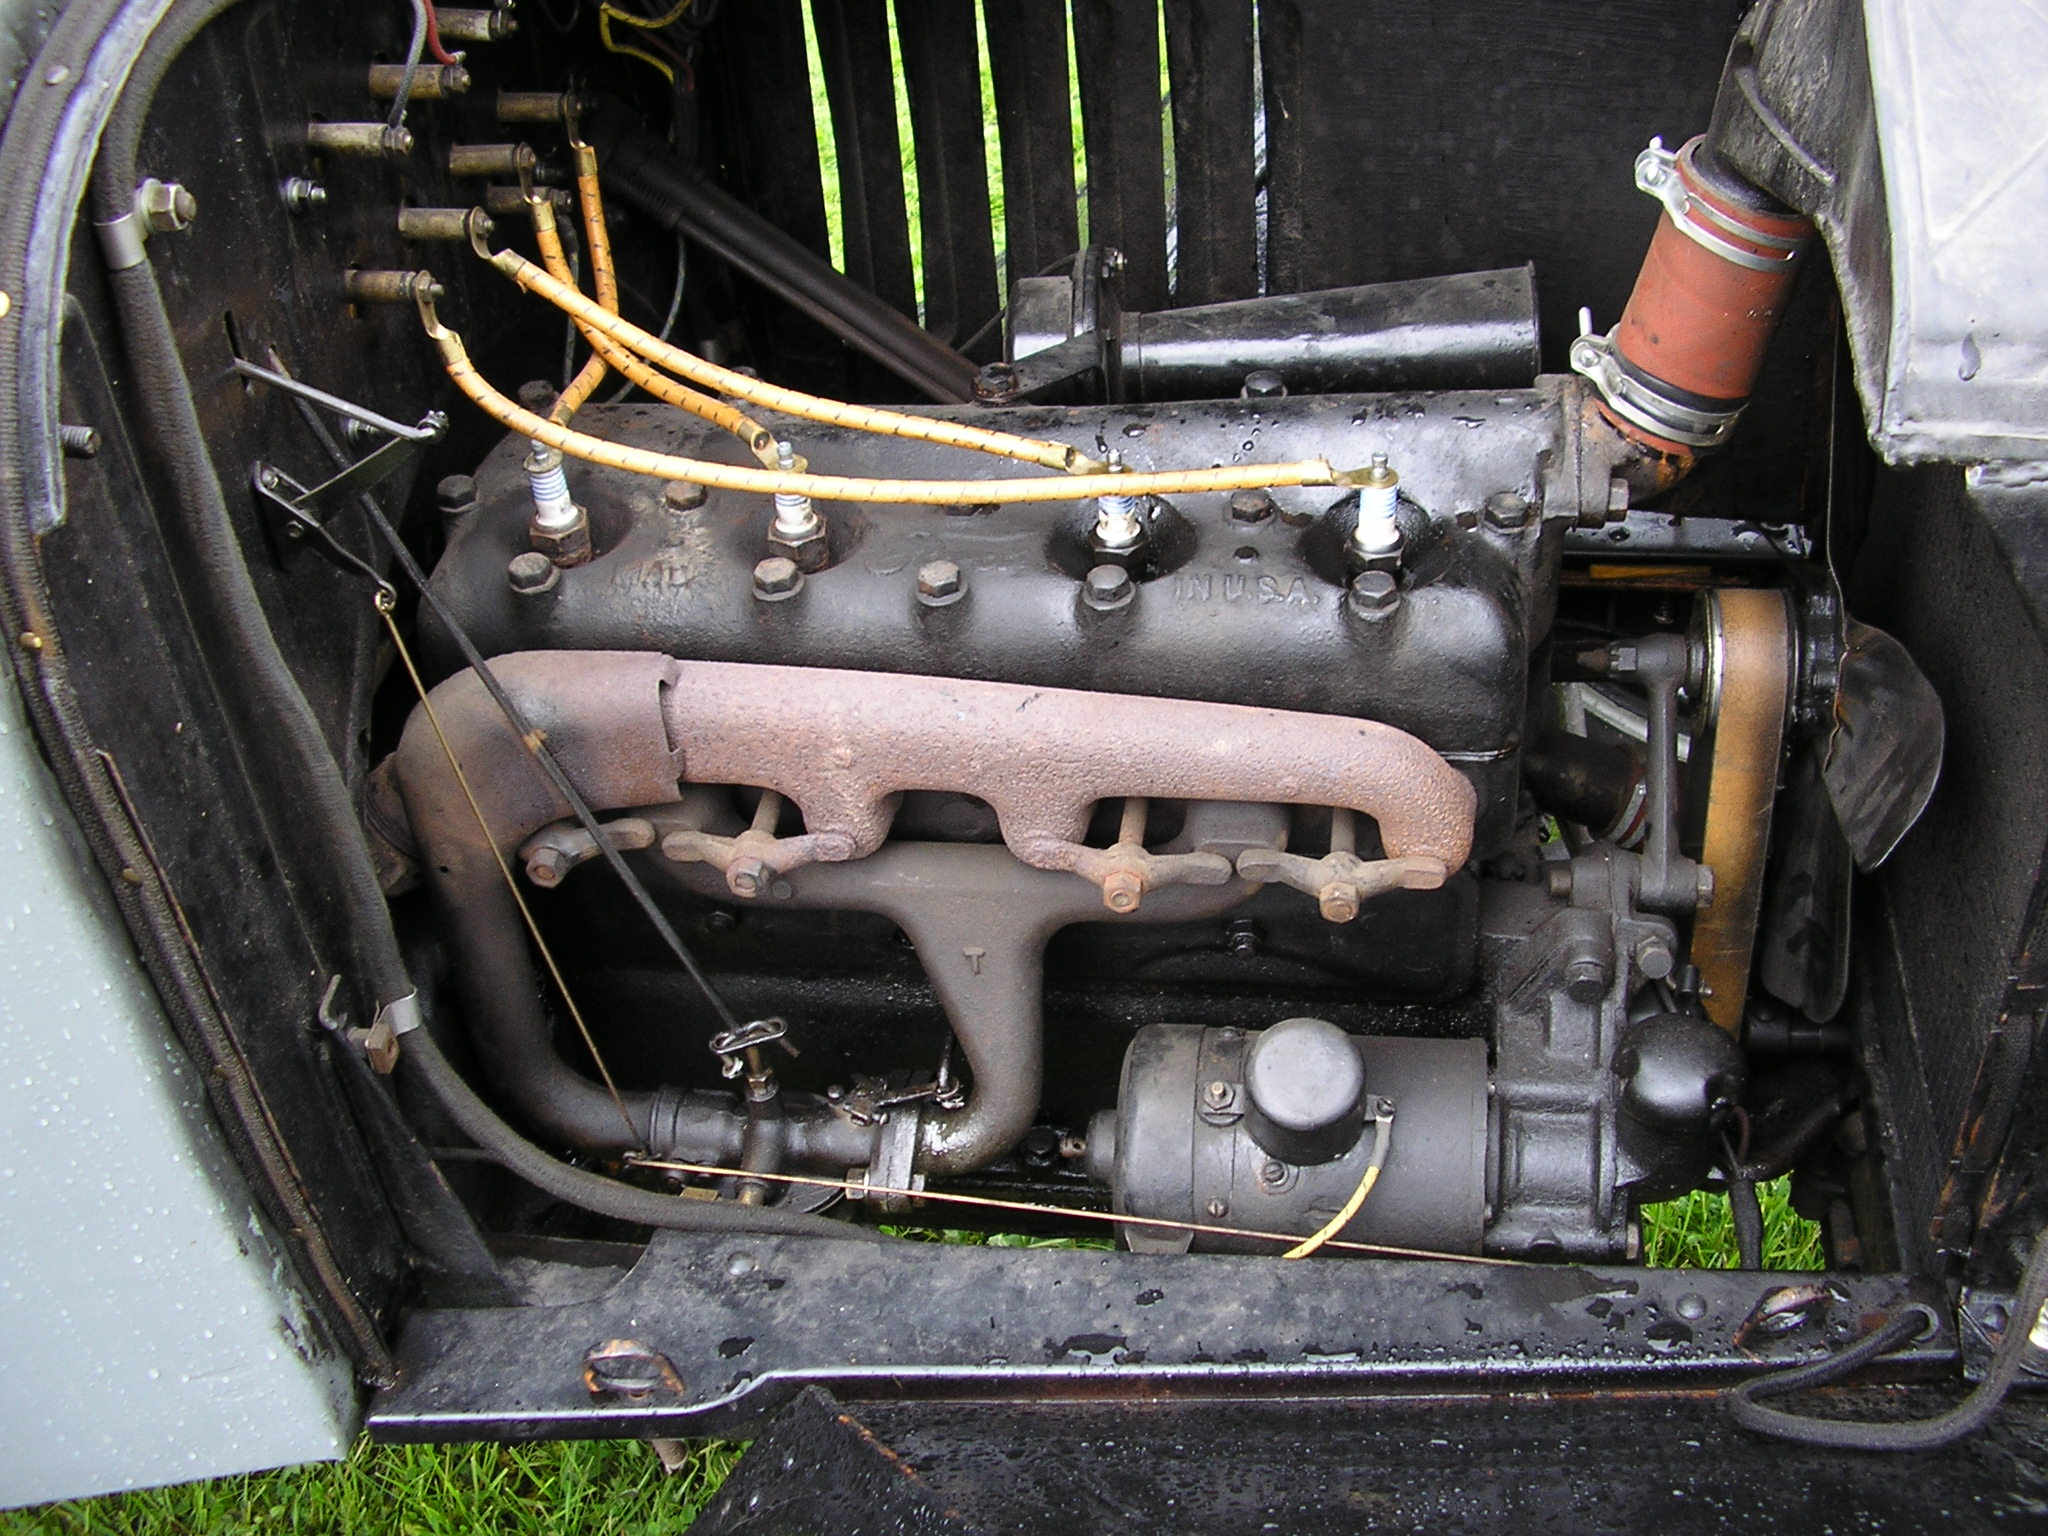 Ford Model T engine - WikipediaWikipedia